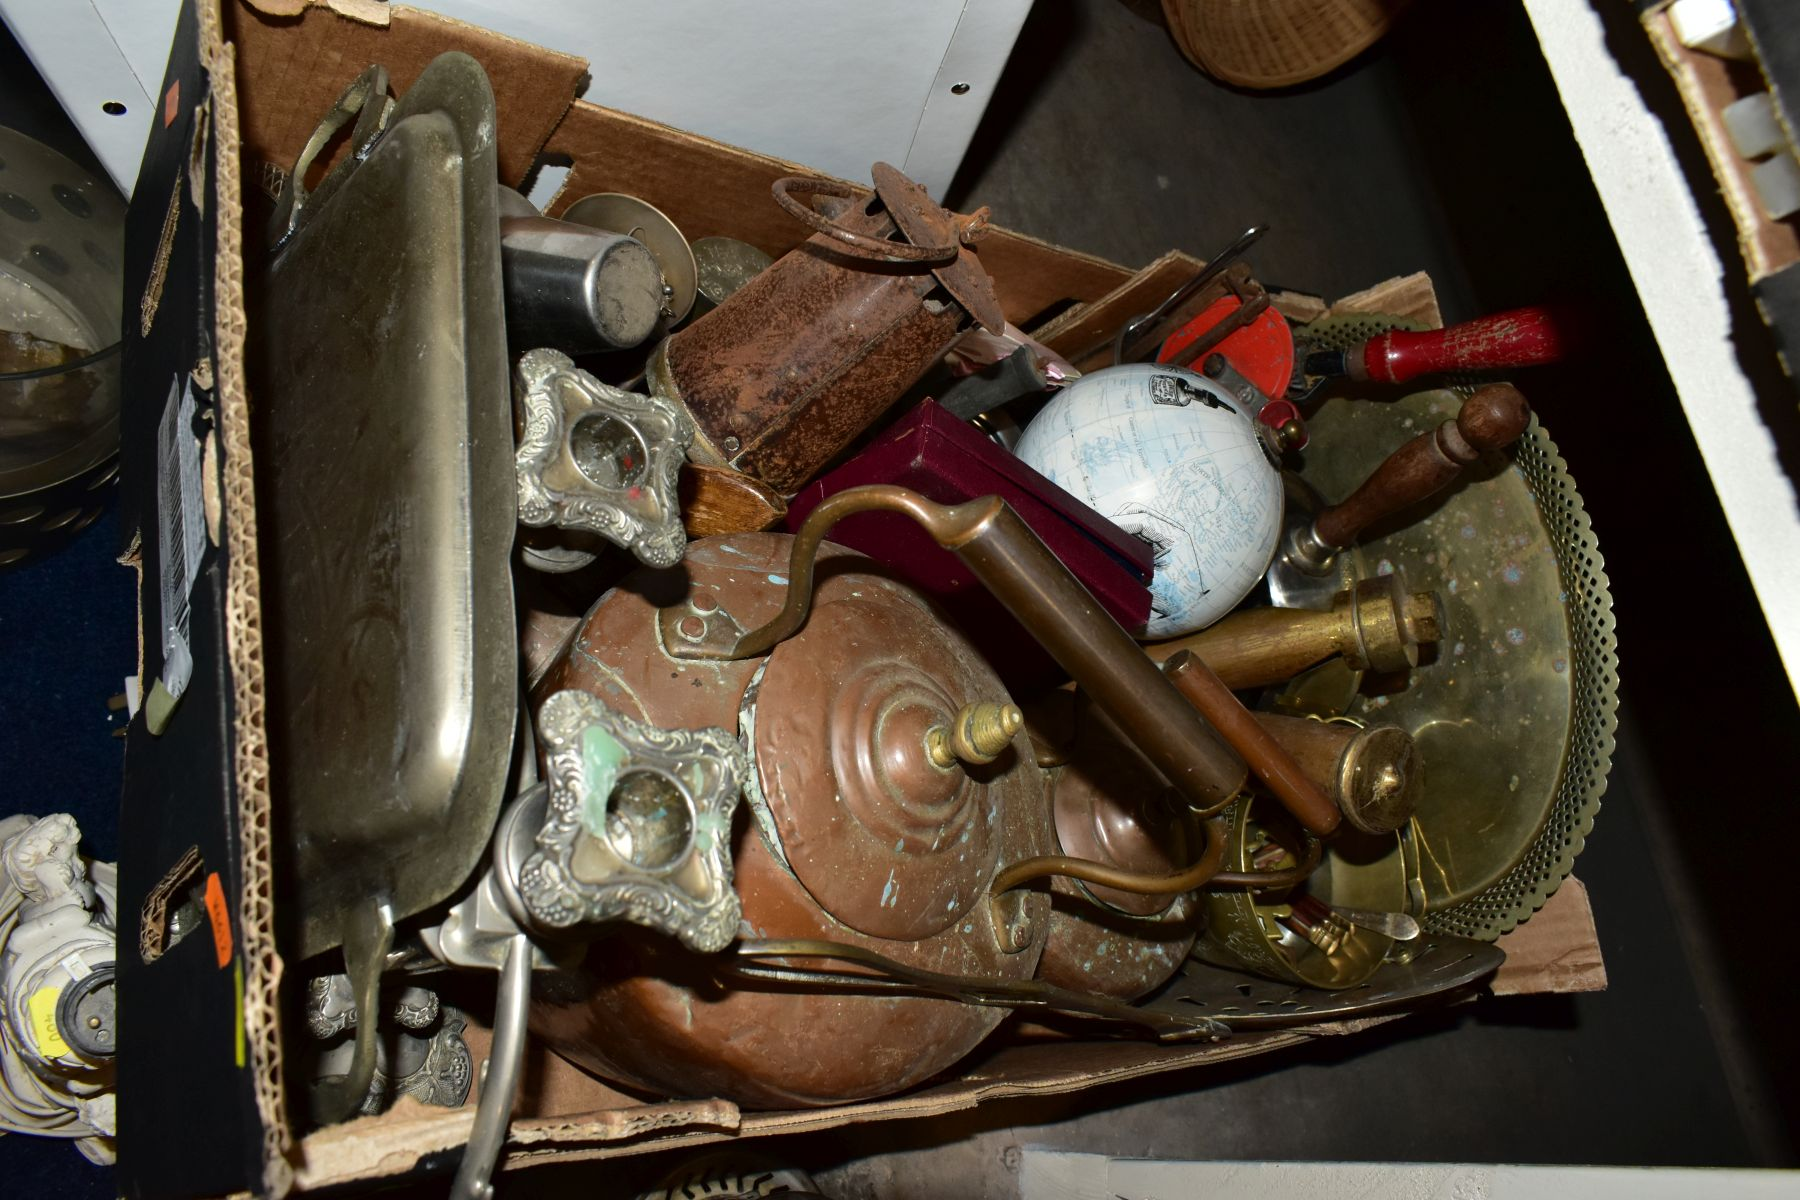 FOUR BOXES AND LOOSE METALWARE, HOUSEHOLD SUNDRIES, OIL LAMP, etc, to include board games, book - Image 12 of 16